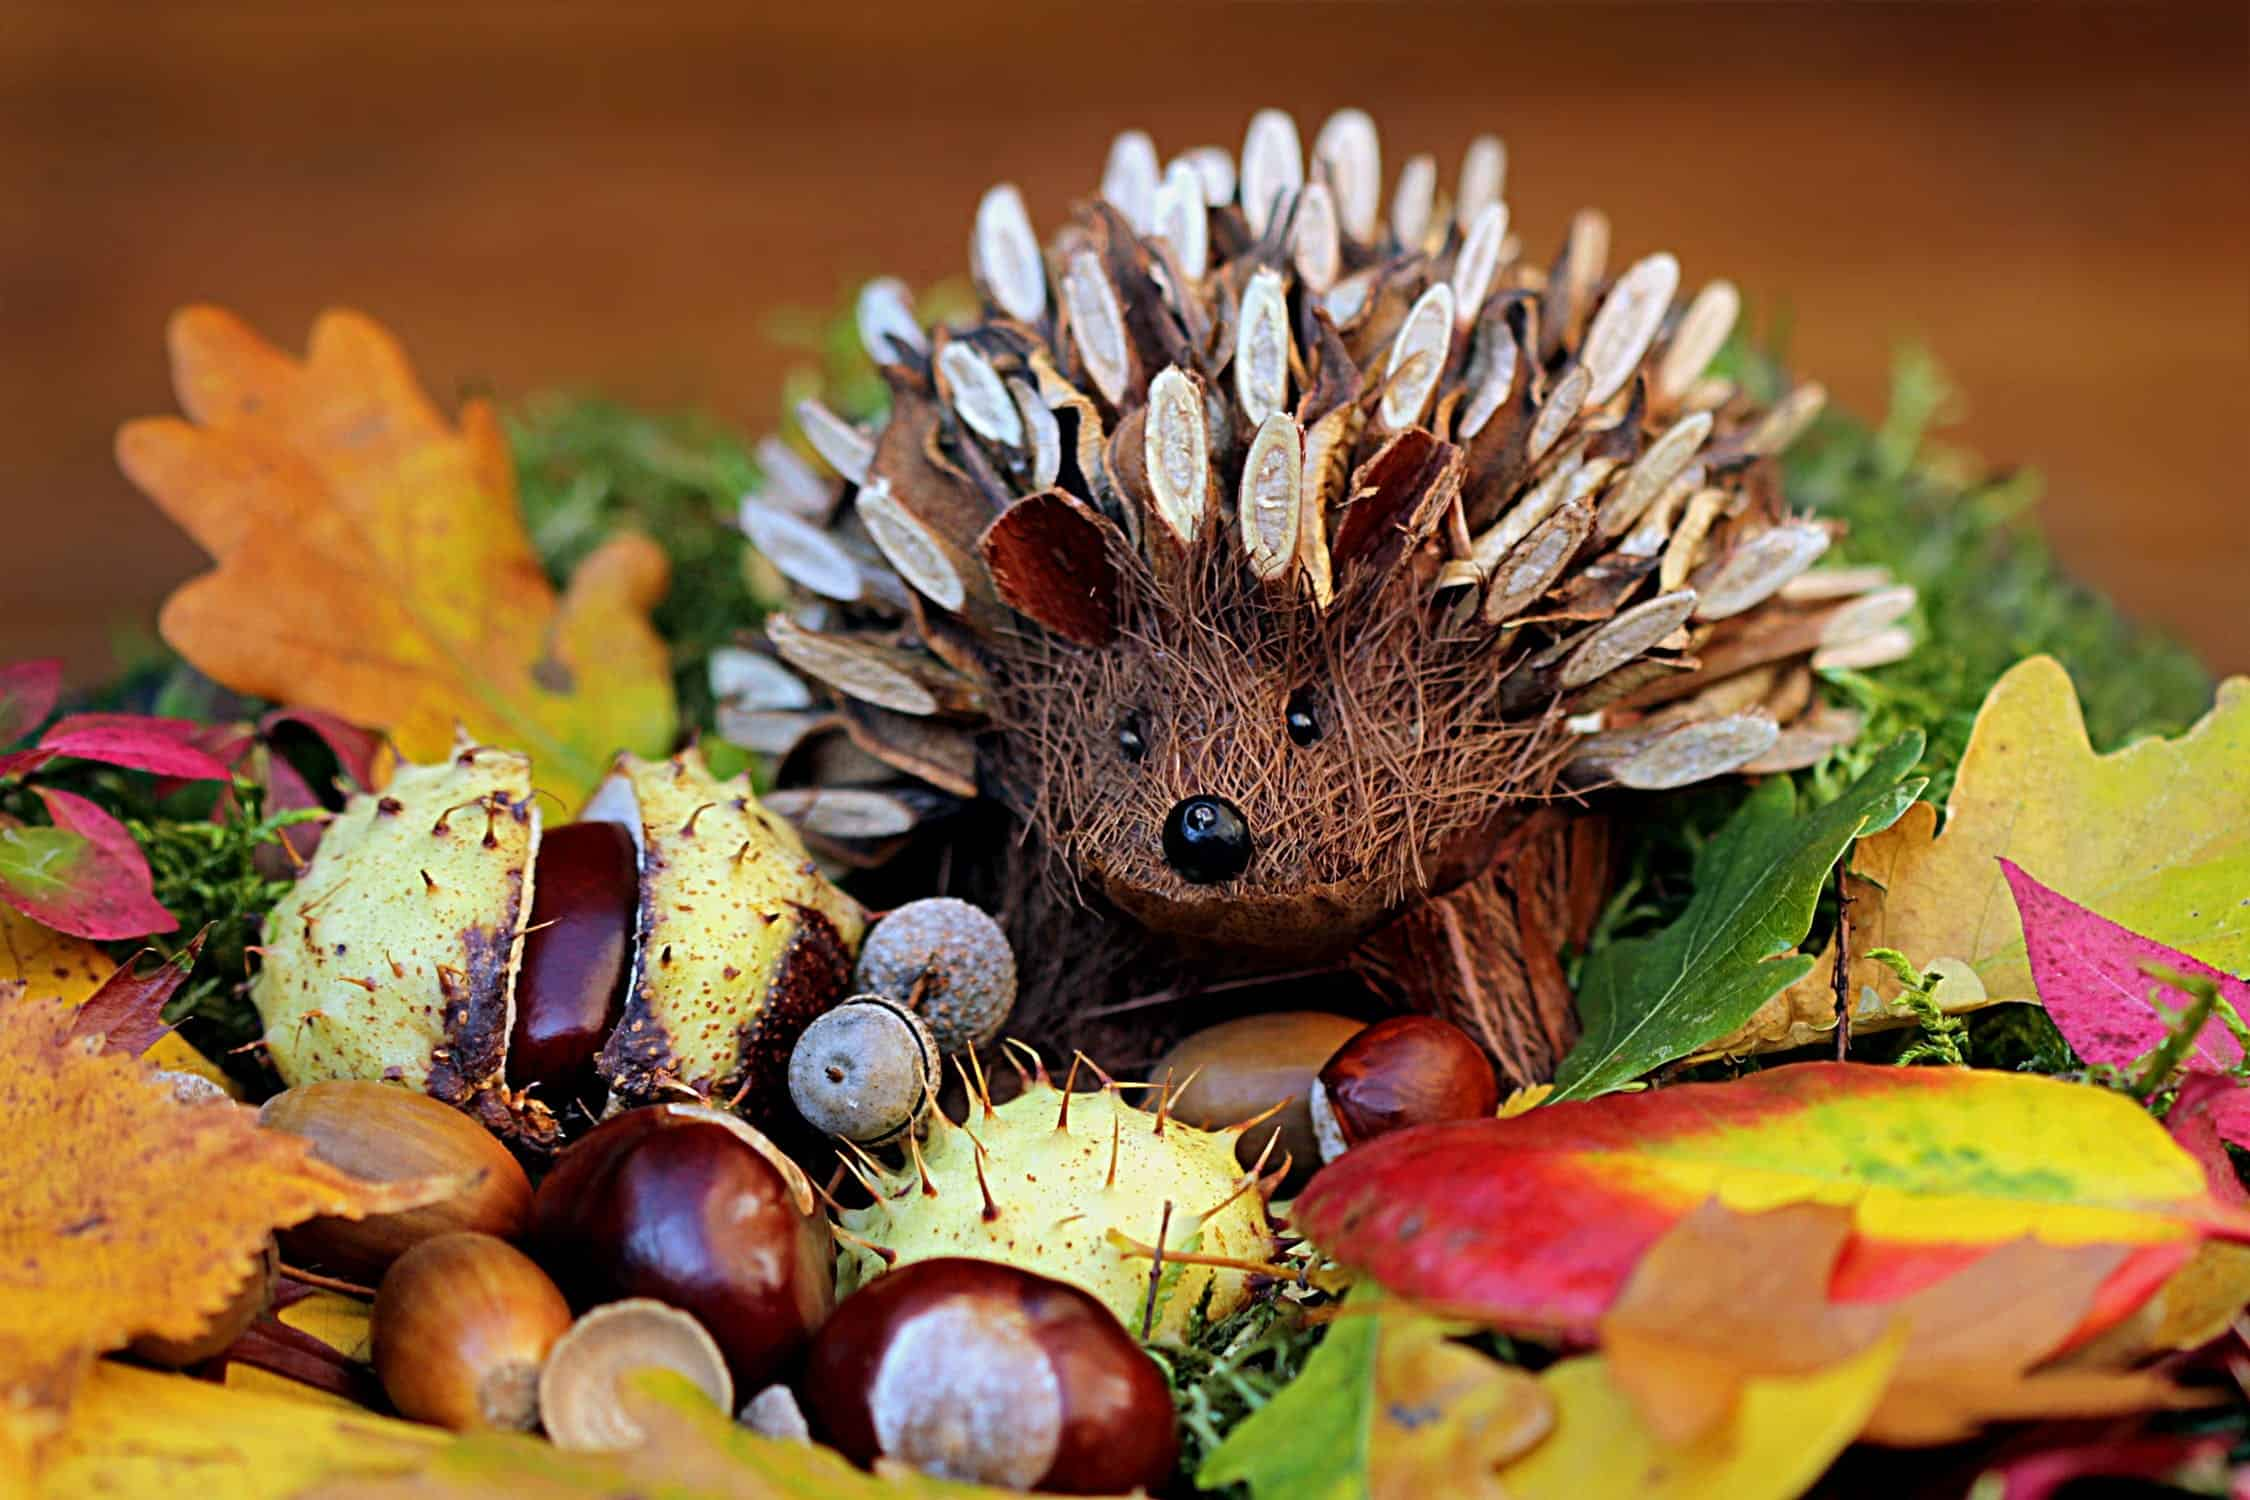 A fake hedgehog on display with conkers and autumn leaves